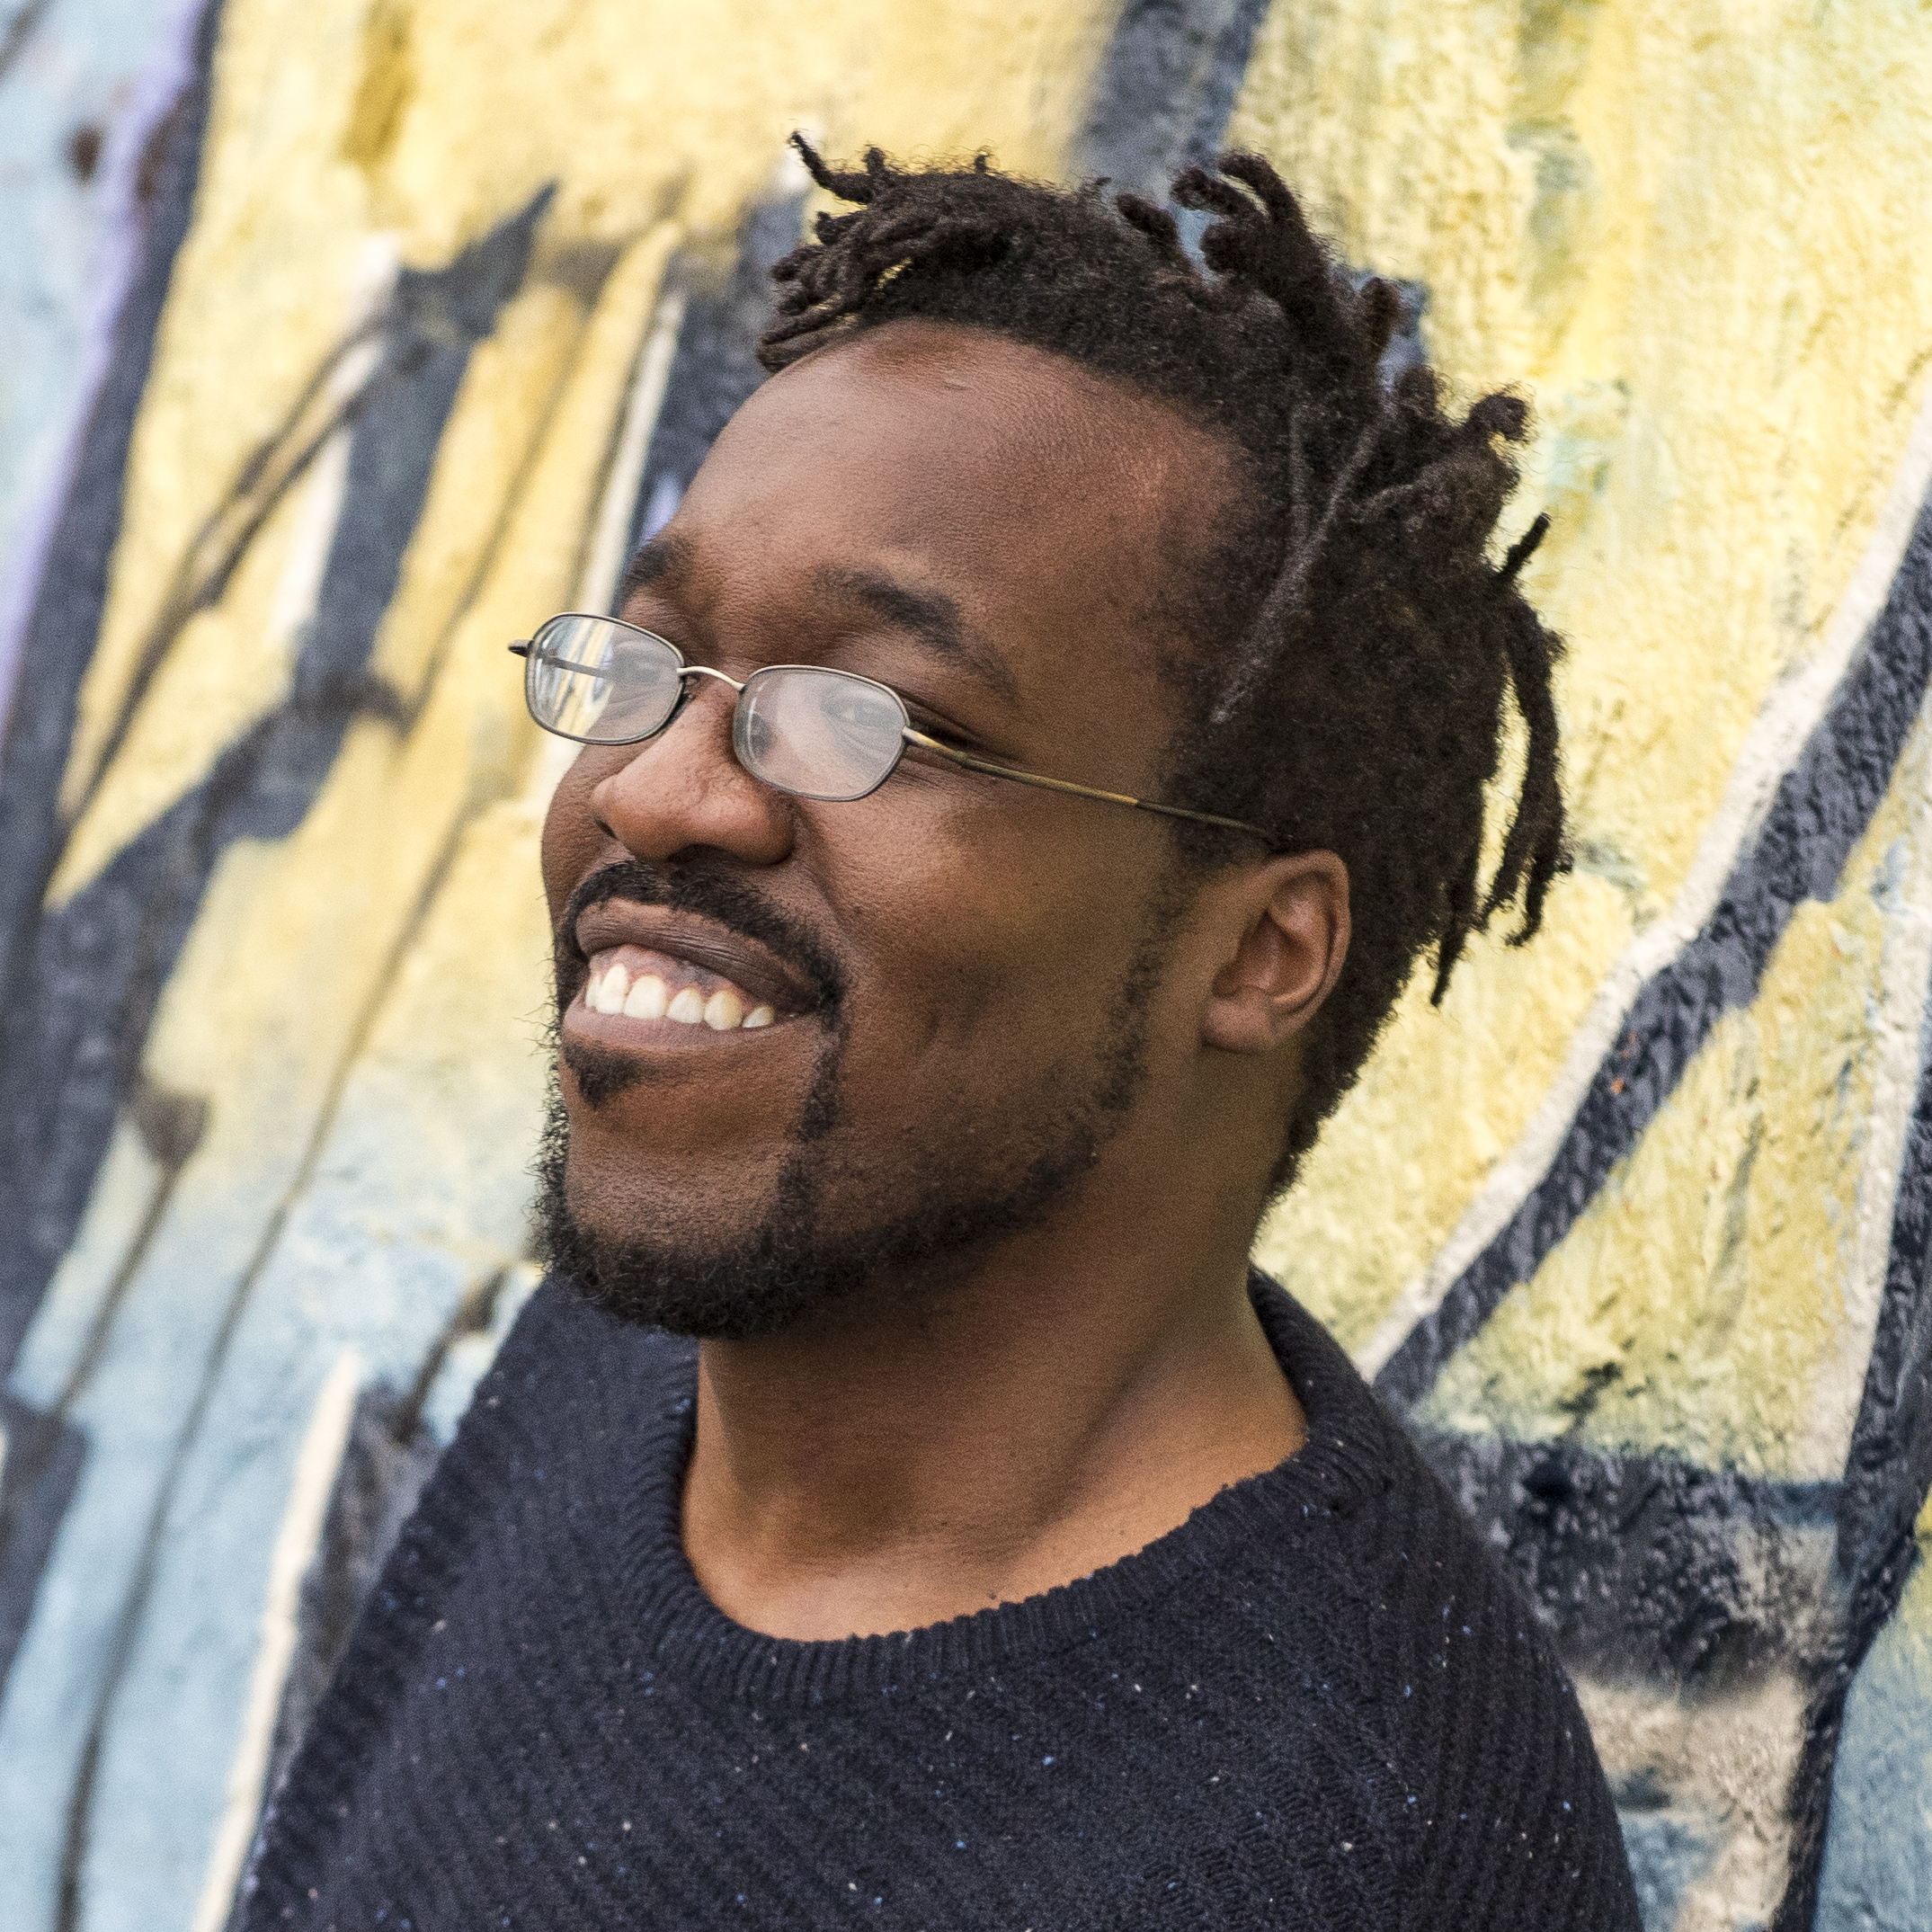 JAMES CANNON   Hailing from the south side of Chicago, James is a singer, music producer, bacon cheeseburger lover and deep dish pizza aficionado. He spends his days basically trying to be Young Metro, and when he isn't off making tracks somewhere, he finds time to sing bass....tenor....bari....whatever the group needs for whatever song they happen to be singing at the time. If you're ever in the mood to talk music production, or nerd out about the food network for hours on end, then you've found your guy.   Vocal Demo: Use Somebody  Sound Off (o.p.b. Kings of Leon)